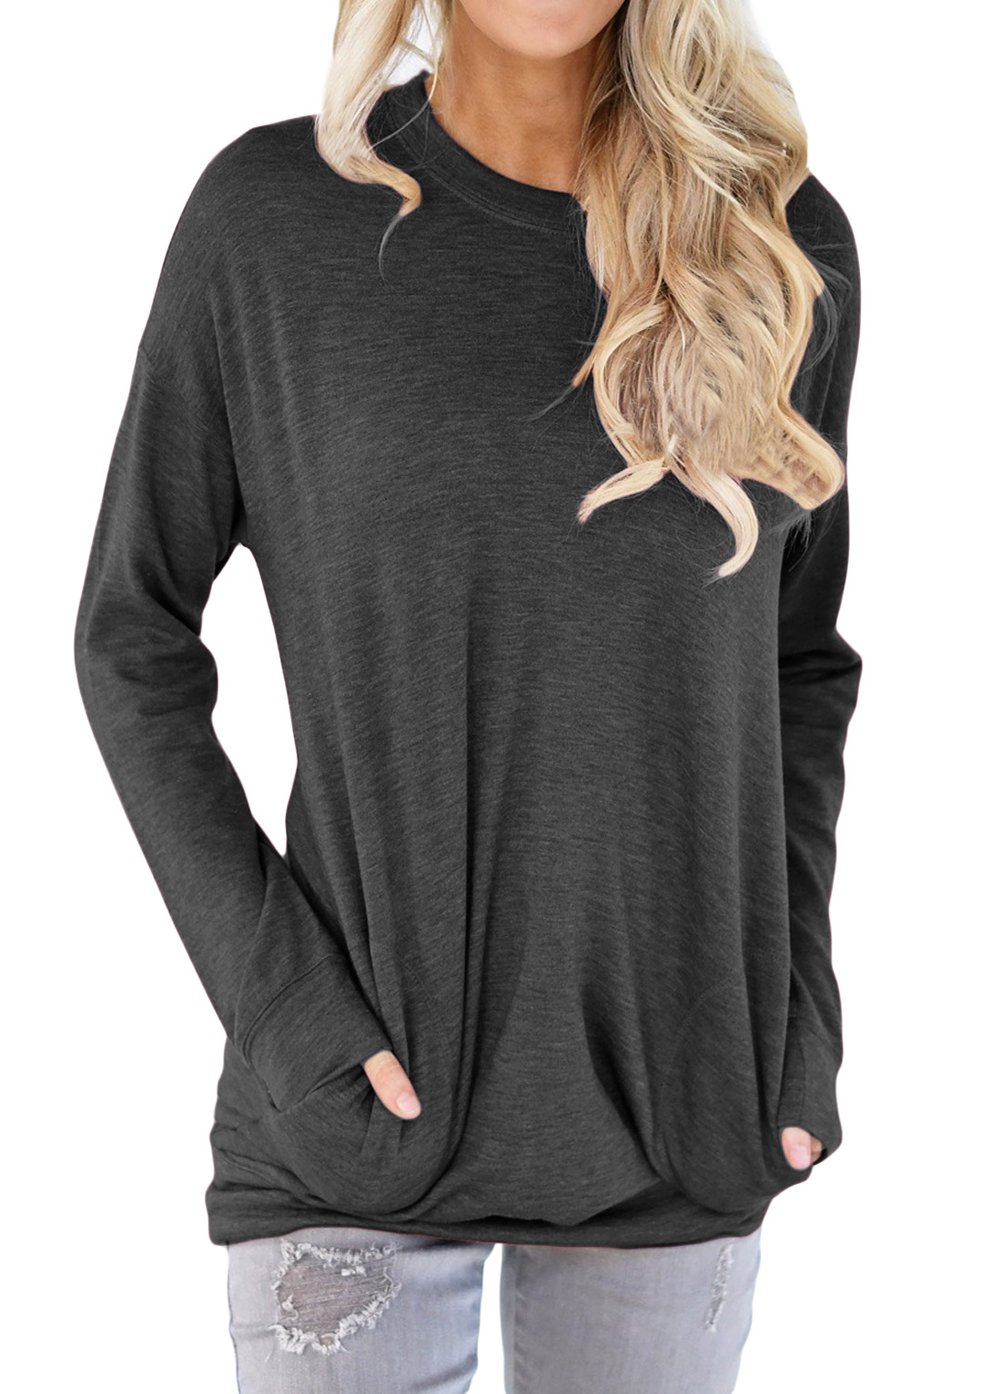 Shawhuwa Womens Long Sleeve Sweatshirt Loose T-Shirt Blouses Tops L Black